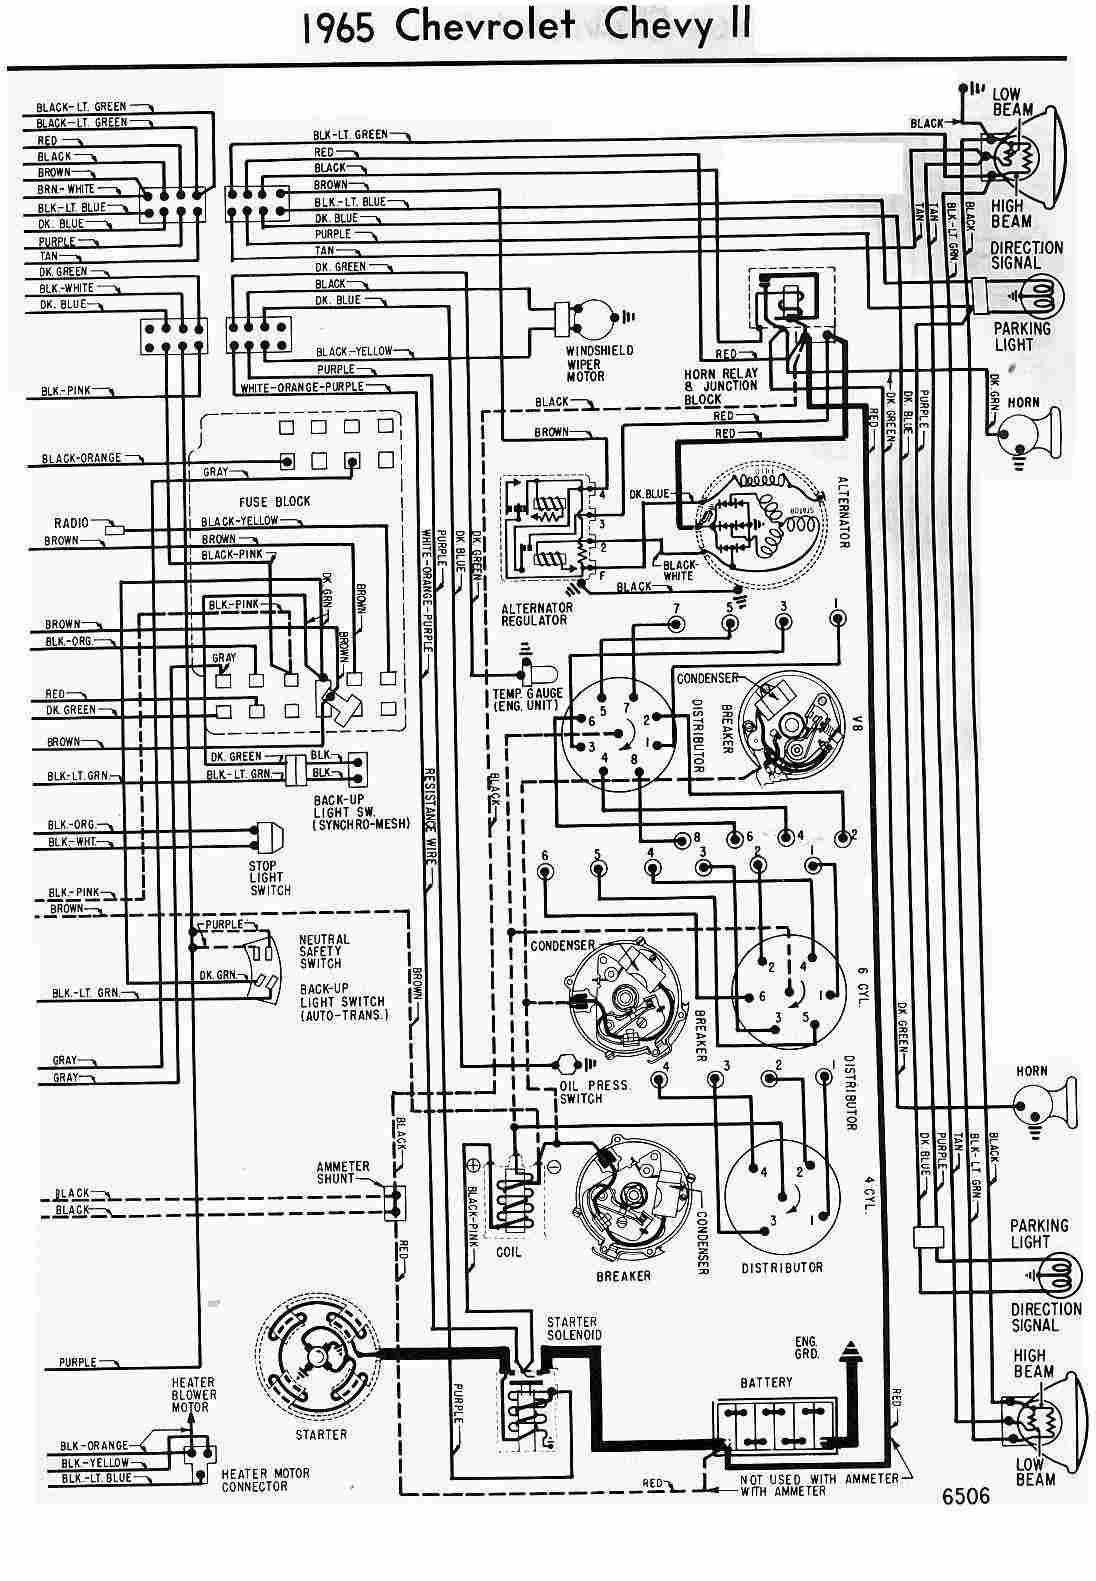 hight resolution of 65 corvair wiring diagram simple wiring diagrams 2009 chevy impala wiring diagram 1965 chevy wiring diagram